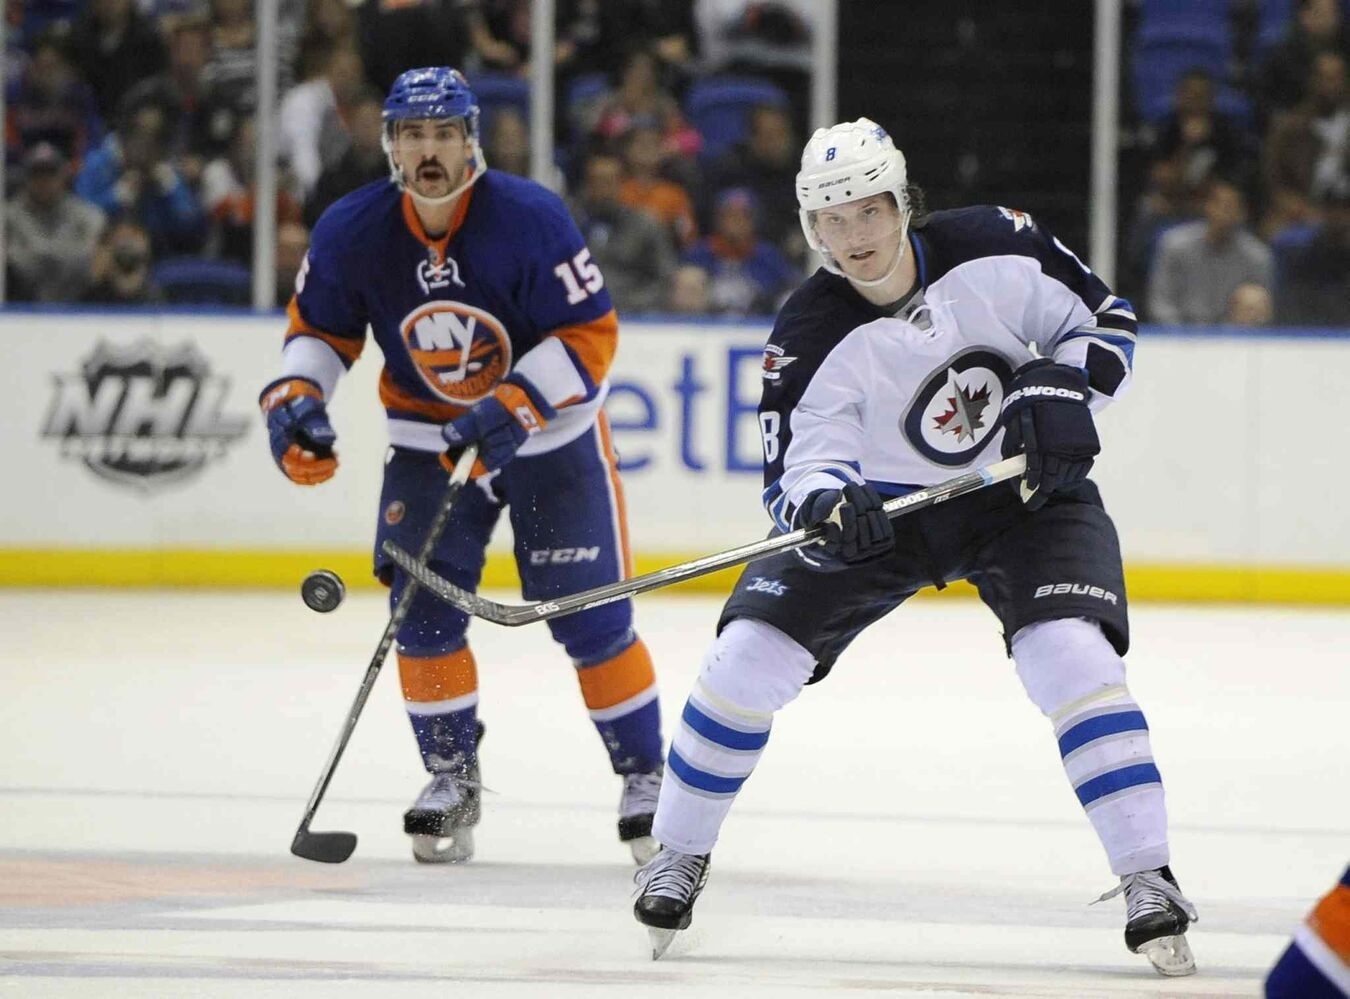 Winnipeg Jets defenceman Jacob Trouba (right) flicks the puck down the ice and away from New York Islanders forward Cal Clutterbuck in the third period. (Kathy Kmonicek / The Associated Press)